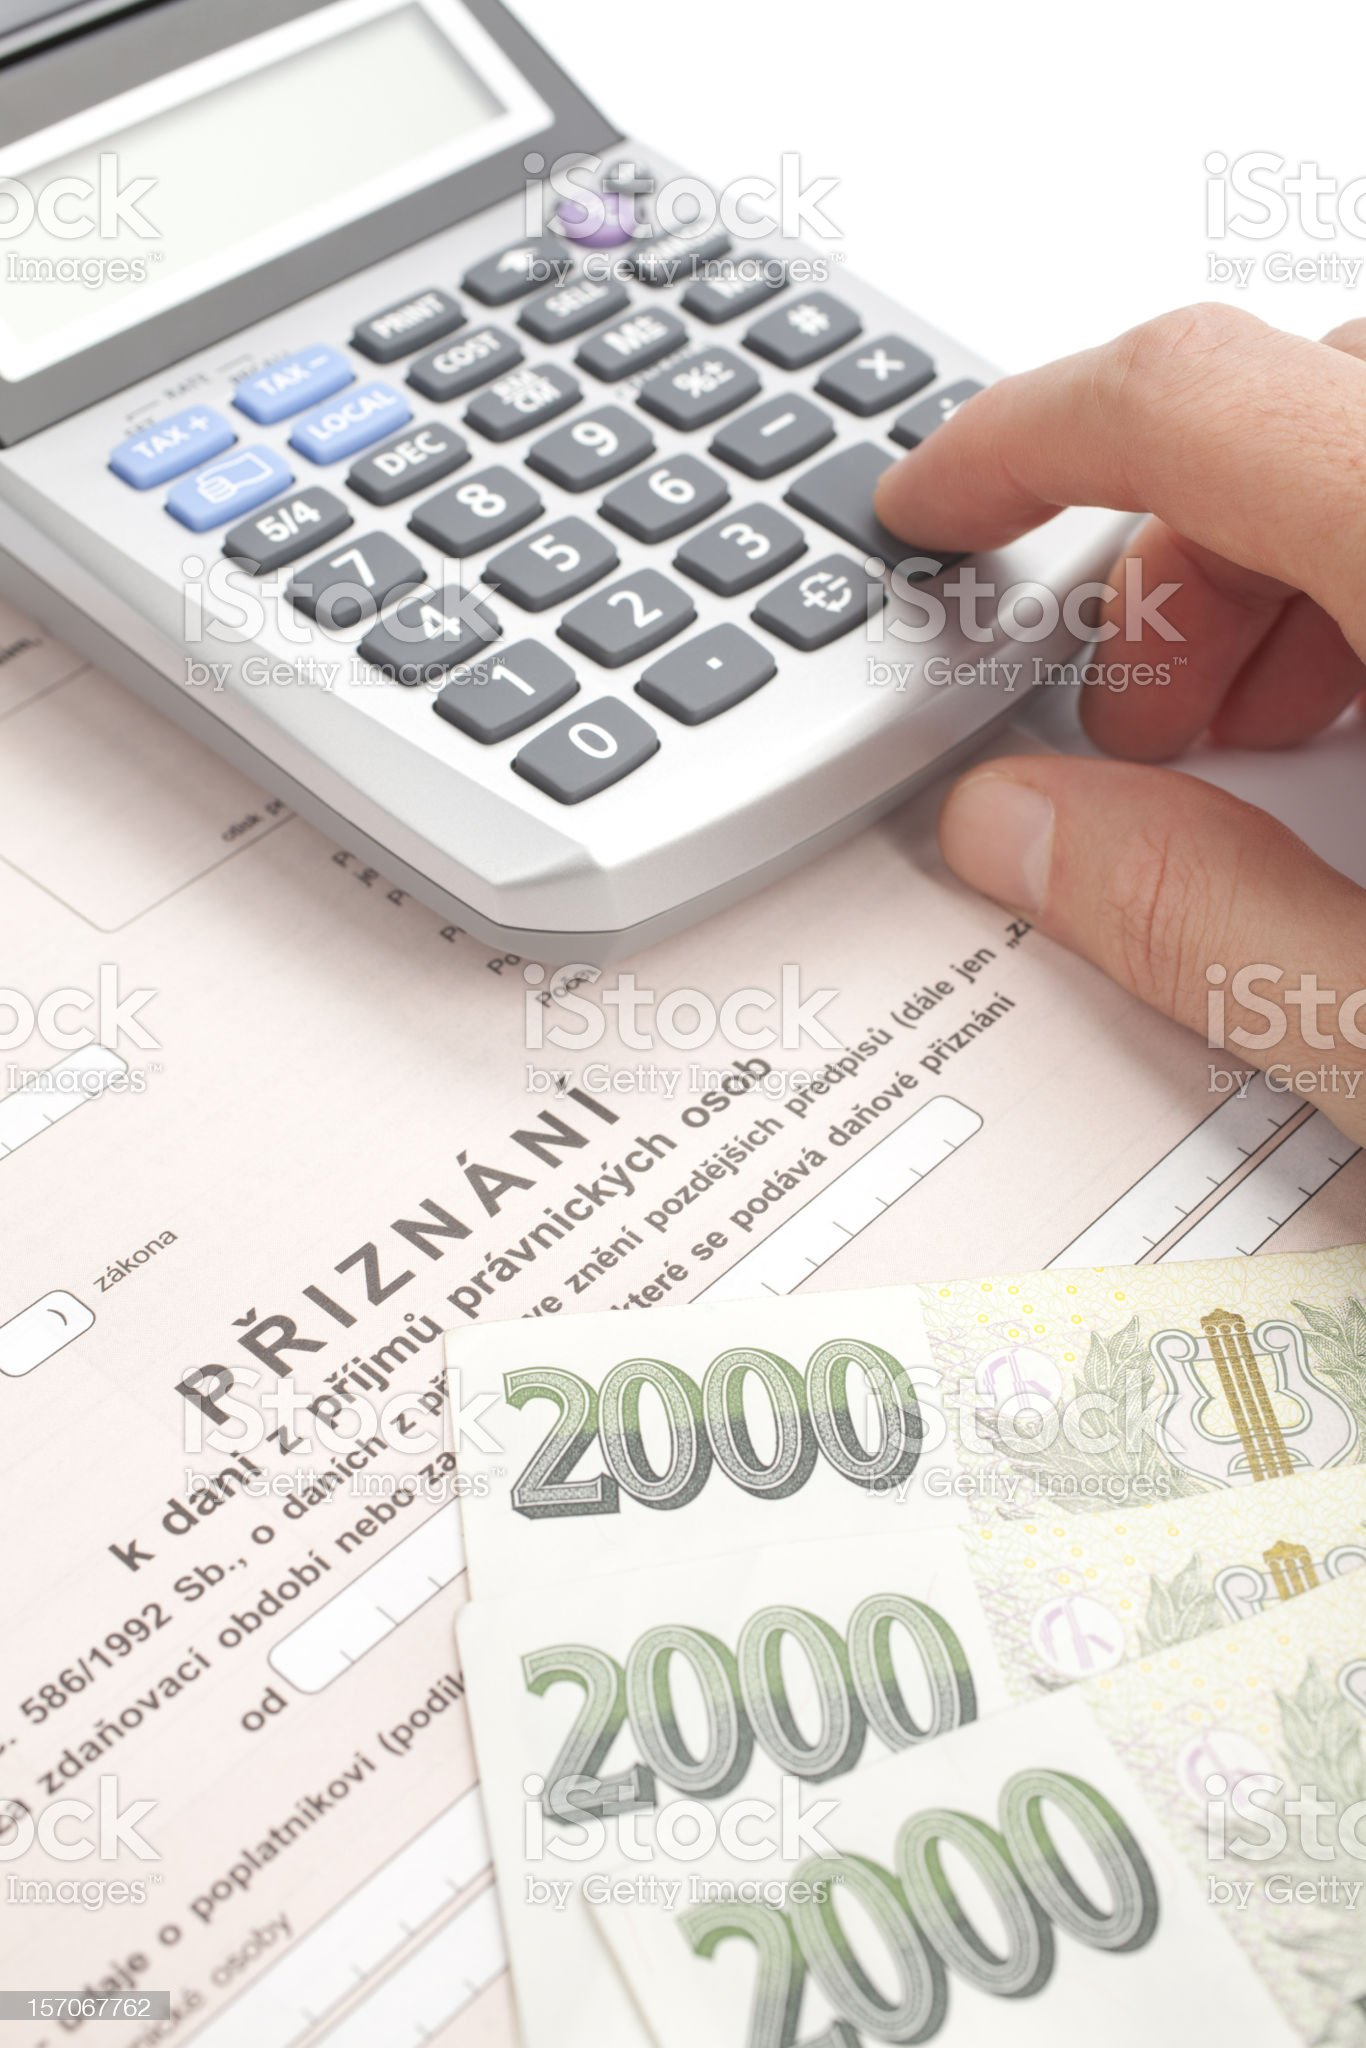 Czech tax form royalty-free stock photo